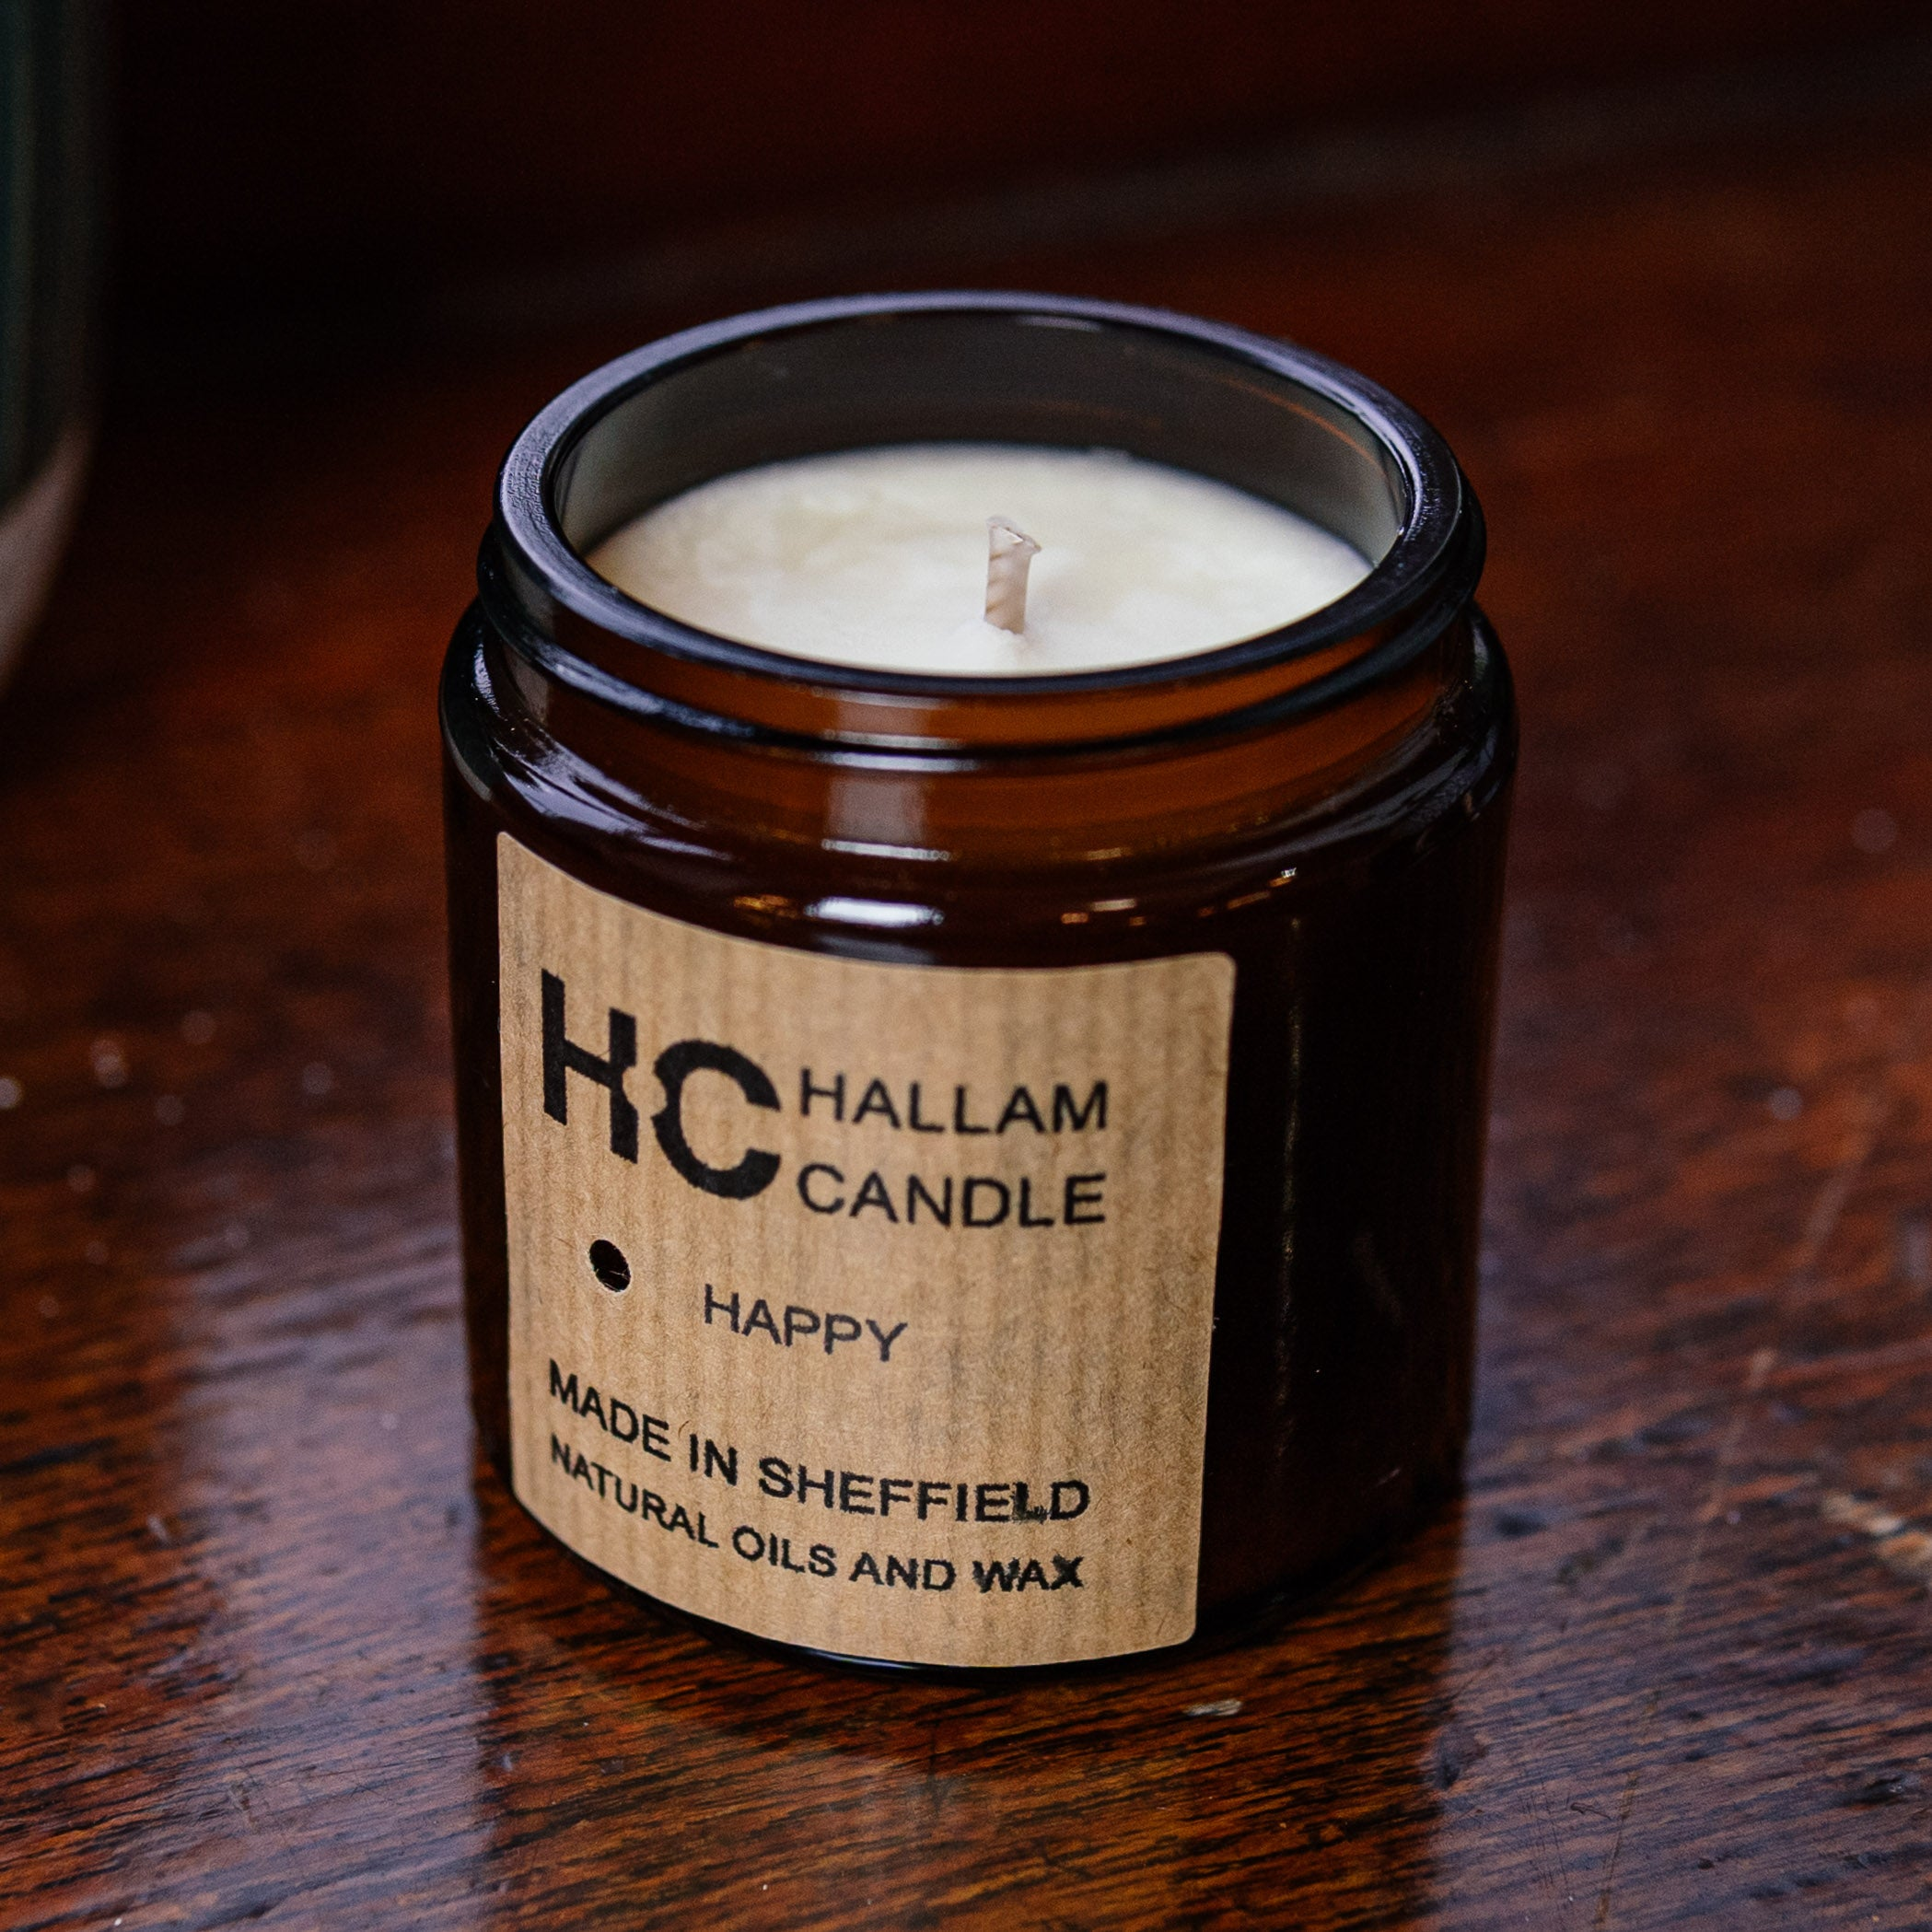 Hallam Candle — The Tetley Shop